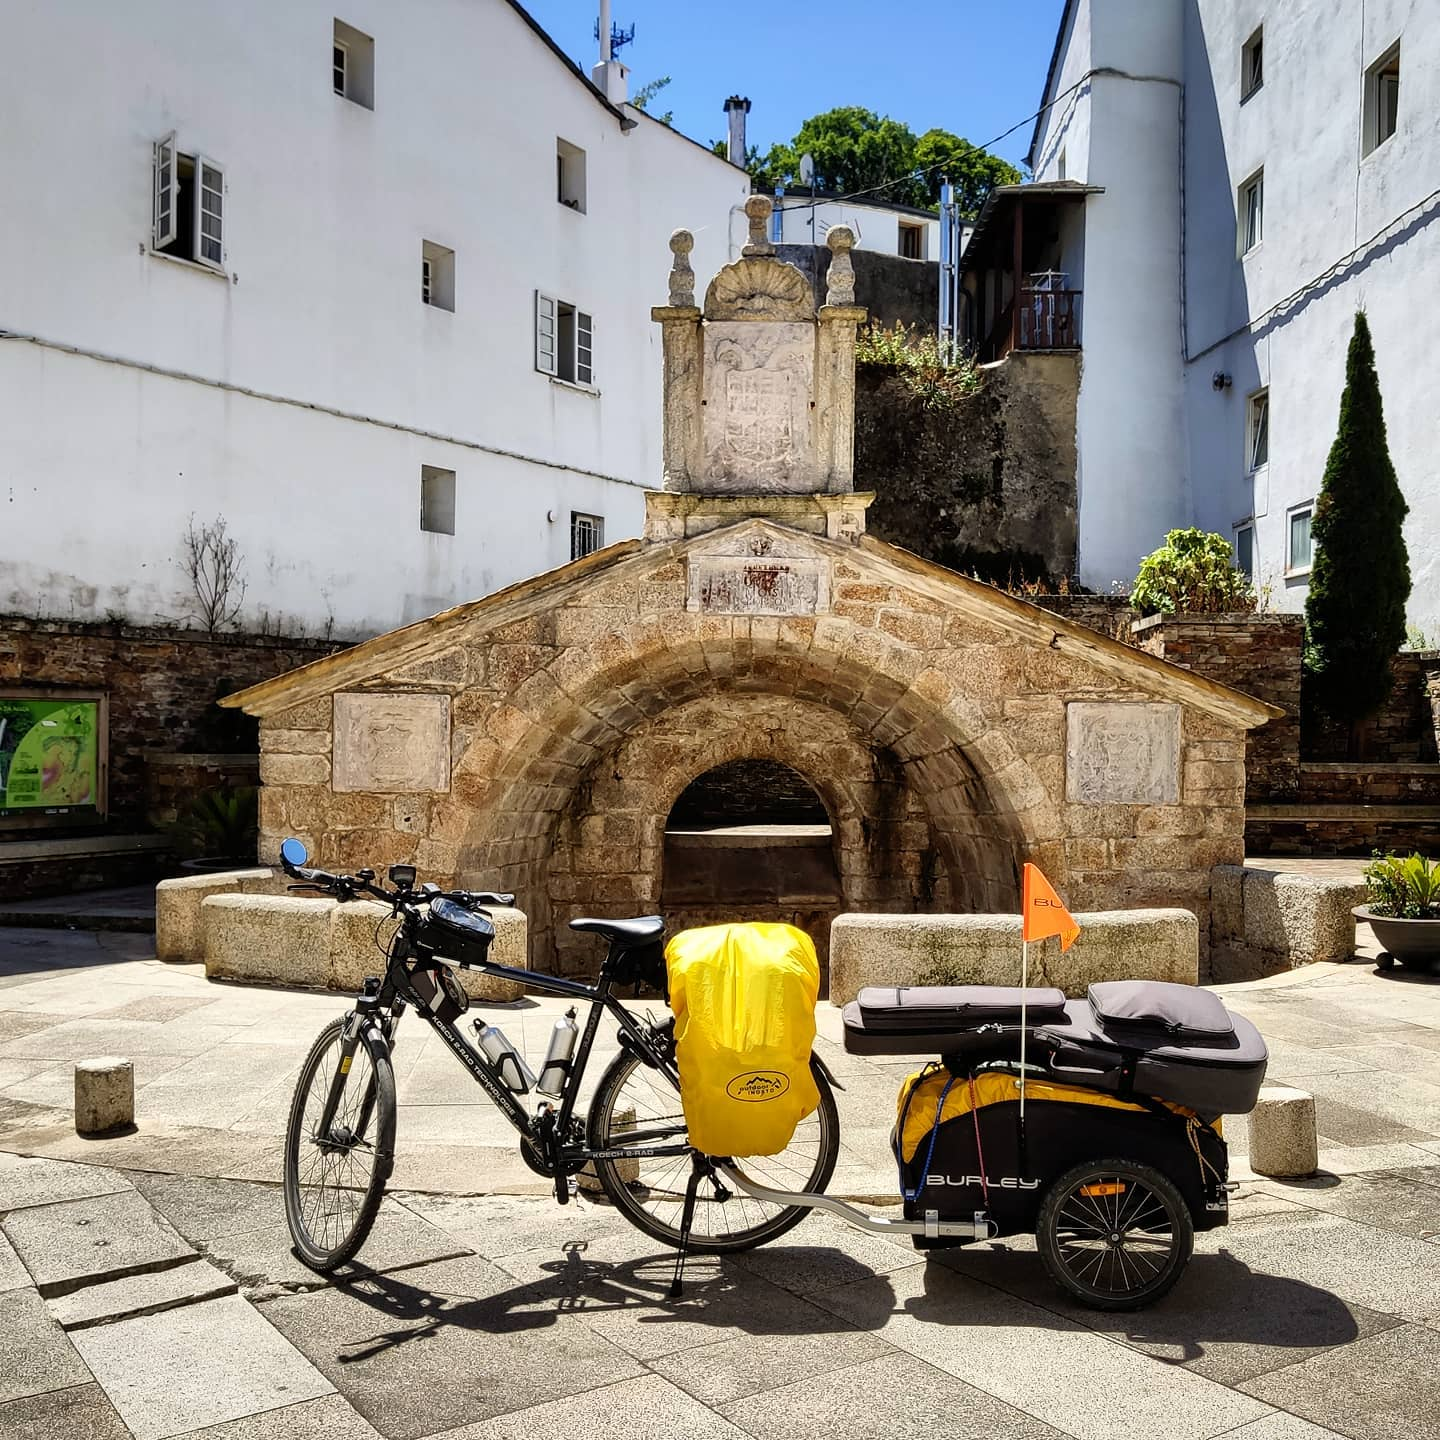 Ride 37 - from Ribadeo to Baamonde (Spain) - 24 July 20